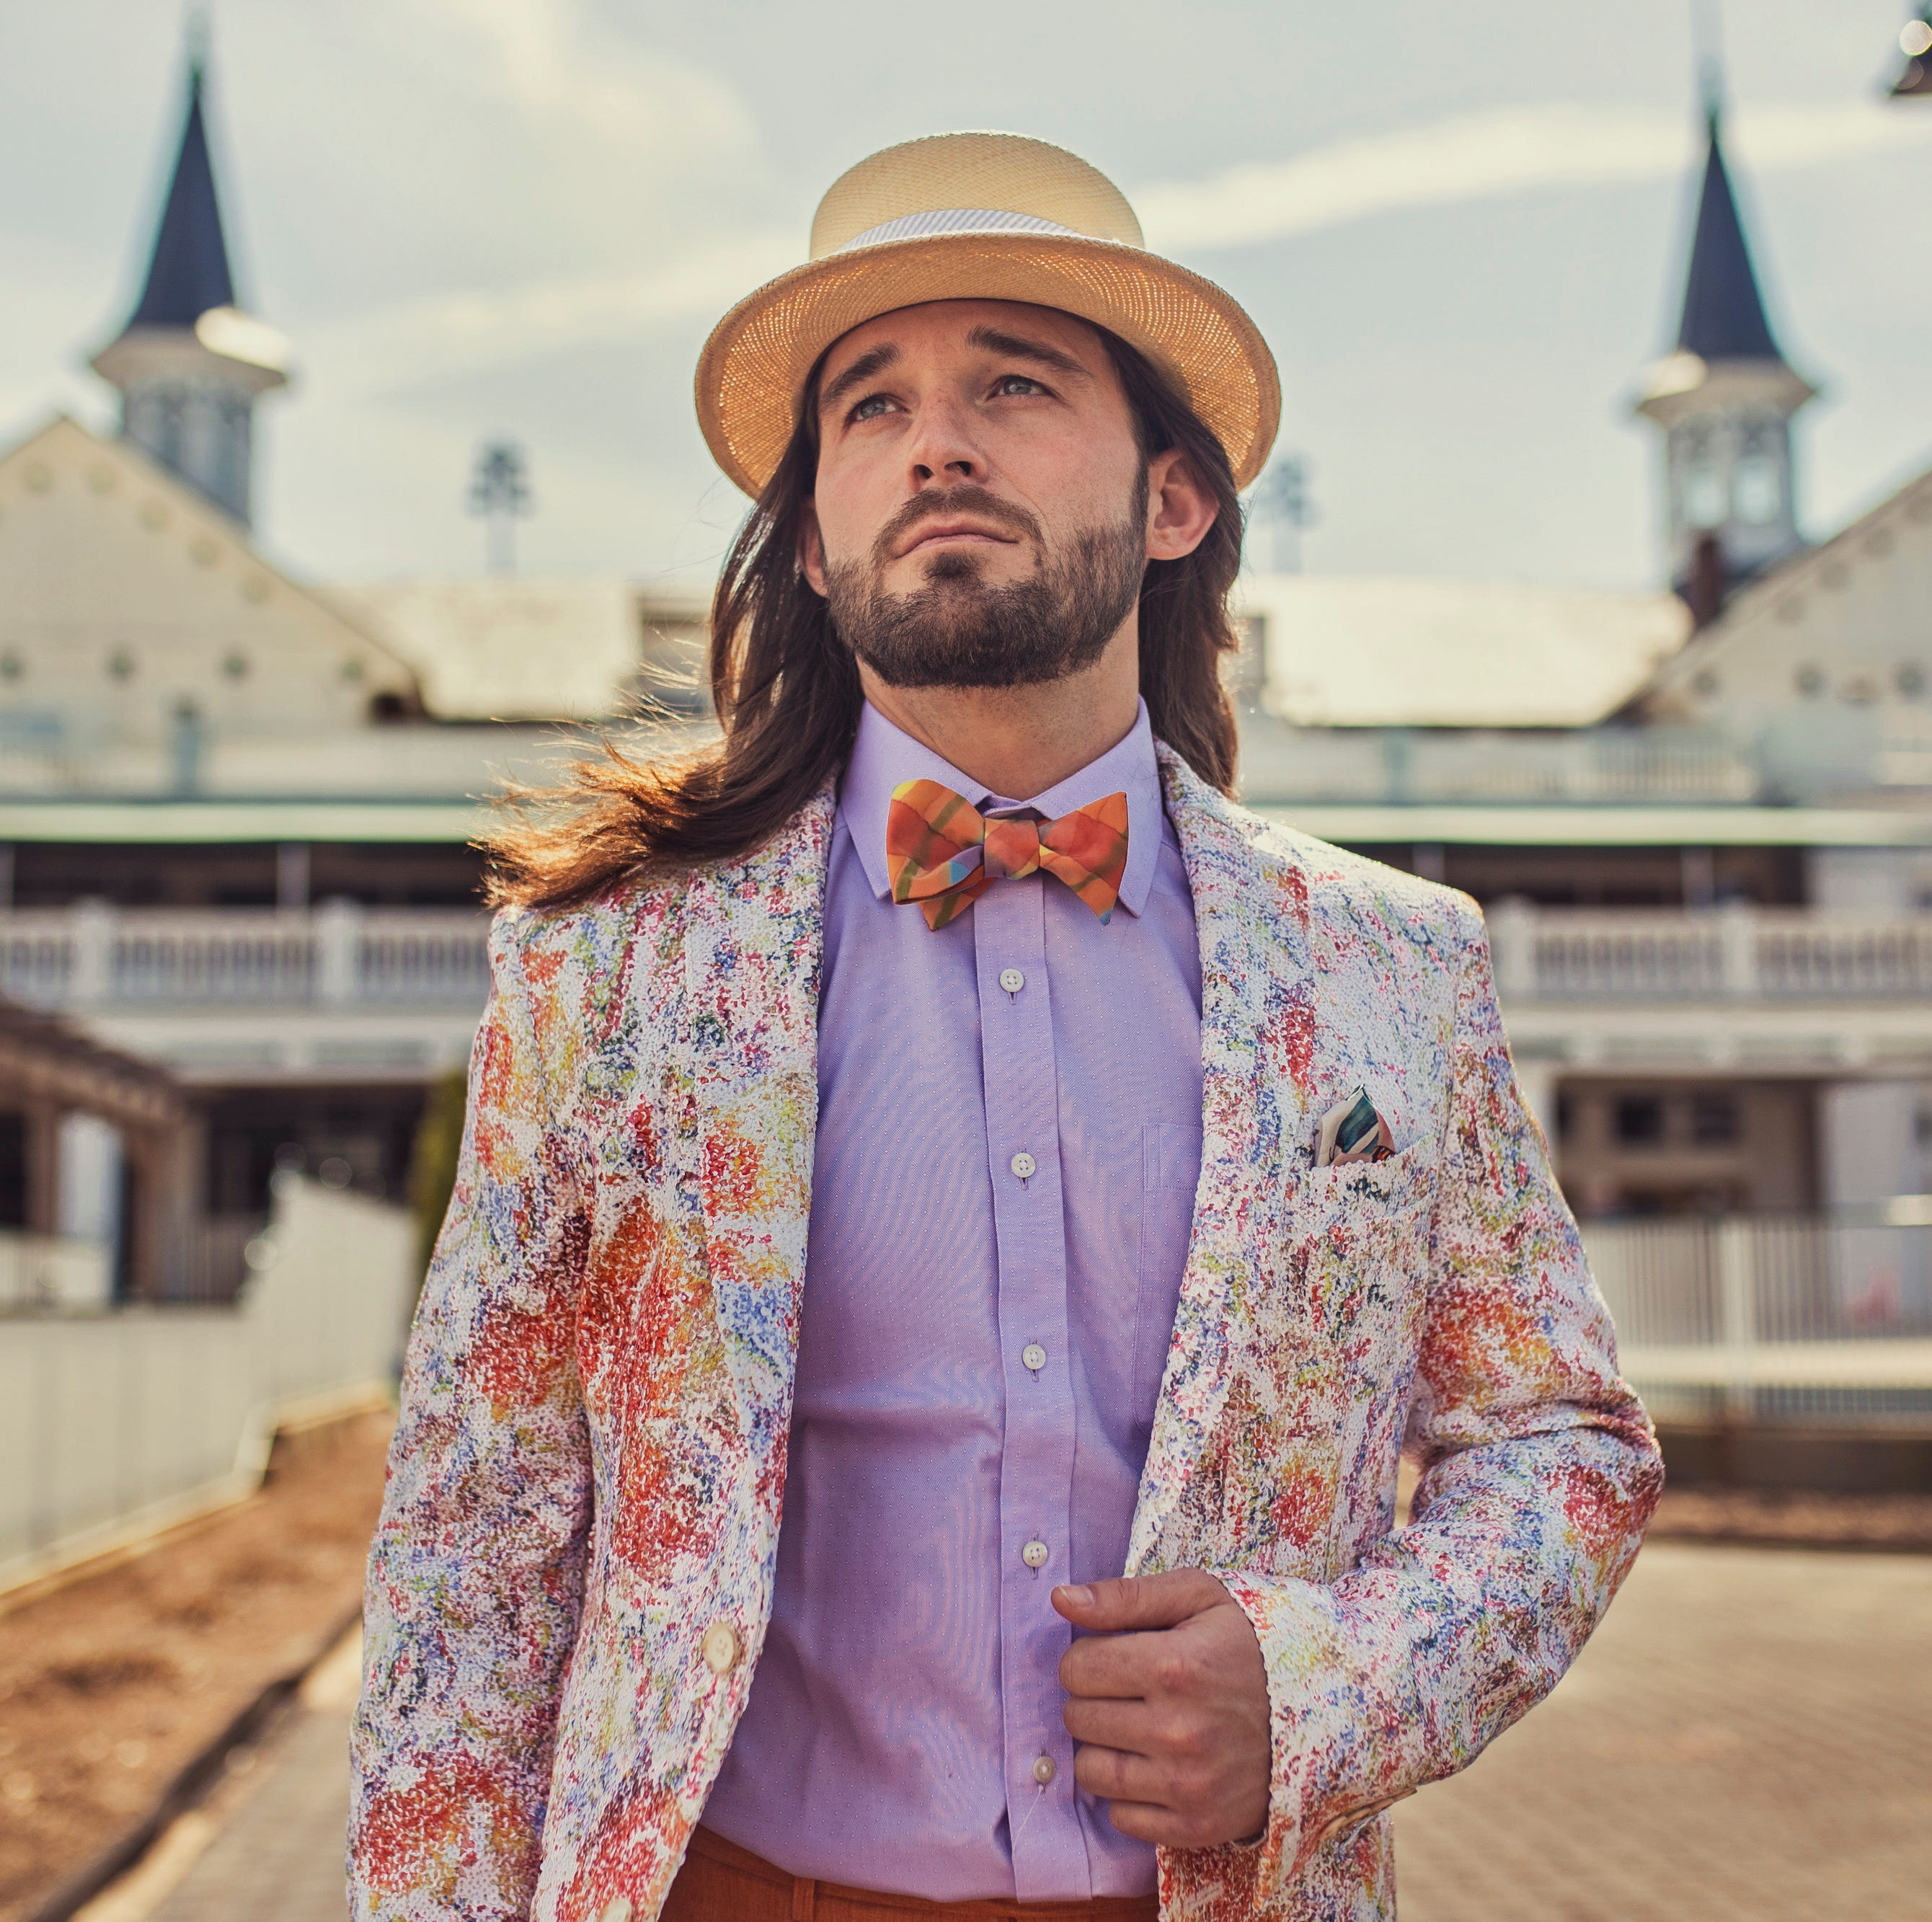 From bow ties to seersucker, here's your ultimate Kentucky Derby men's fashion guide